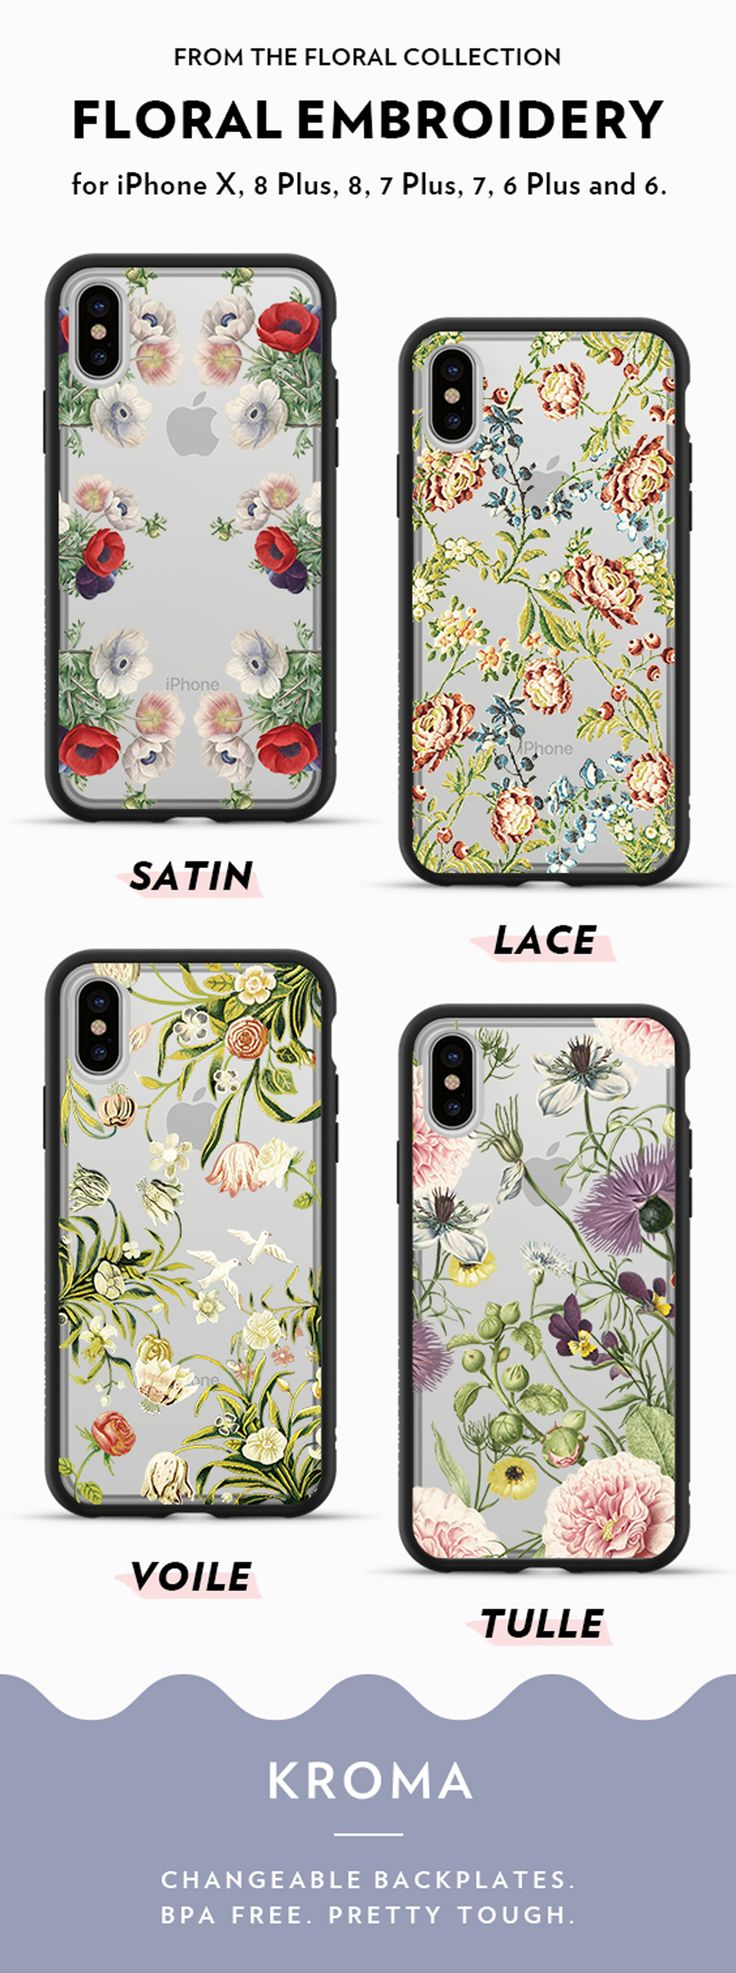 Designs inspired by floral embroidery off the 2017 SS collection. Changeable backplates. iPhone cases for iPhone 6 and 6 Plus, iPhone 7 and 7 Plus, iPhone 8 and 8 Plus, iPhone X.  #floraldesigns #bpafree